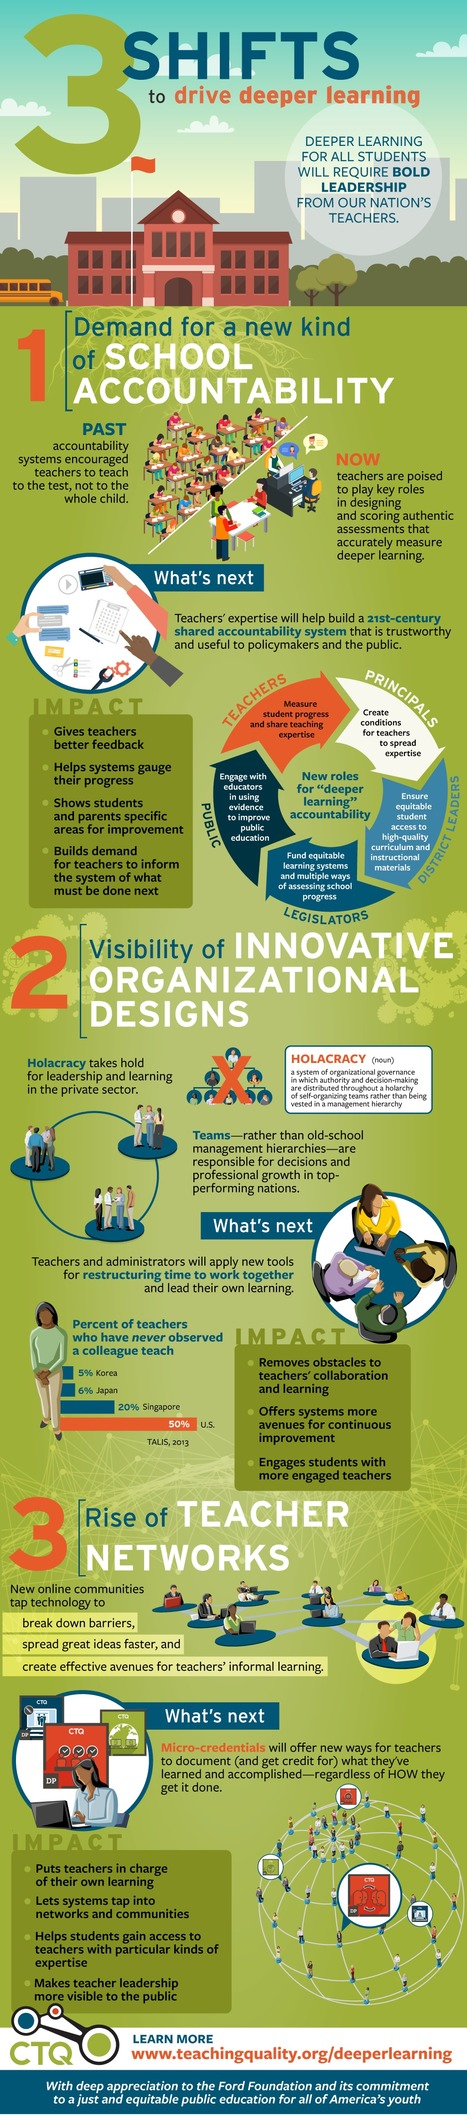 Teacher leadership & deeper learning for all students [#Infographic] | #CTQ #CTQCollab | Organización y Futuro | Scoop.it